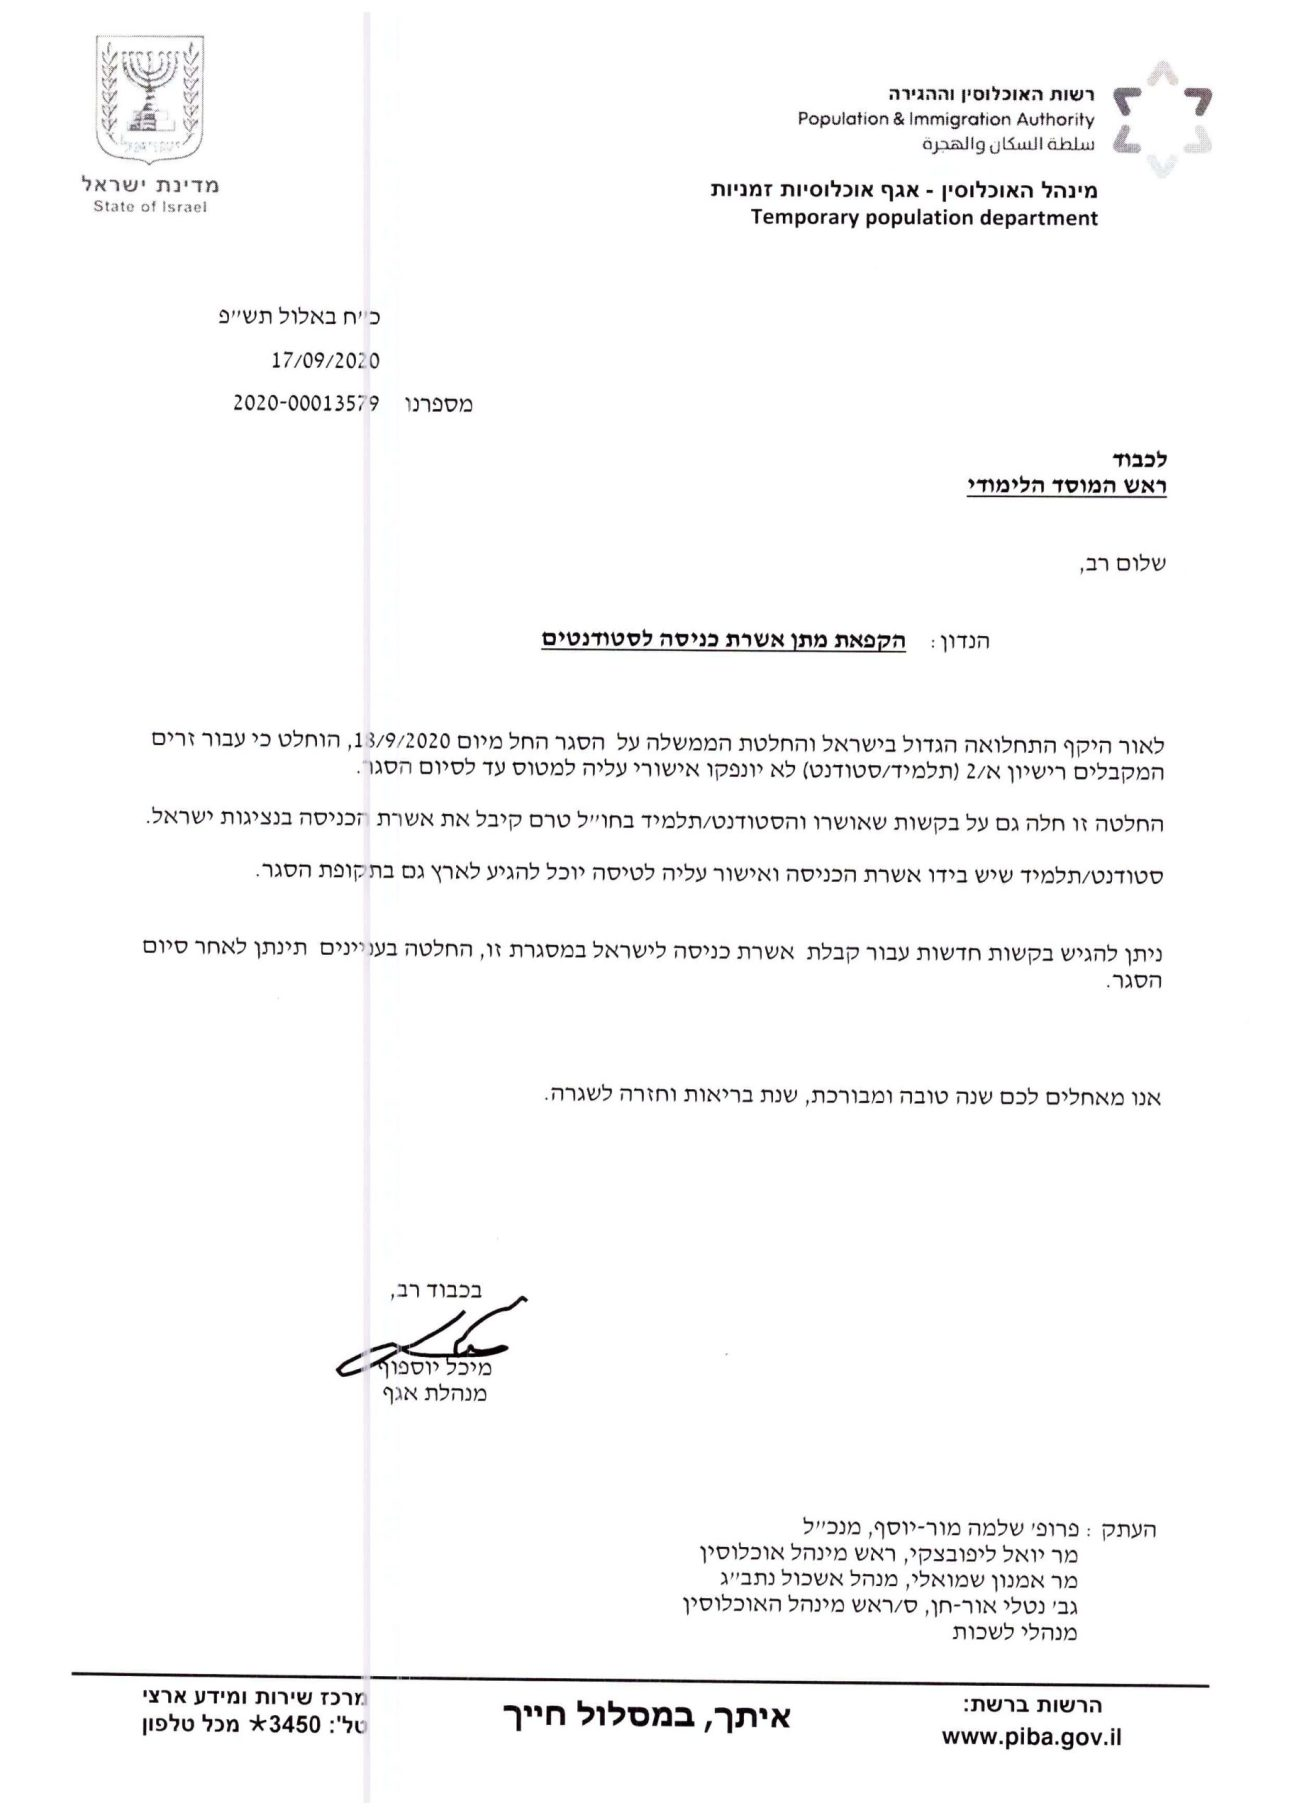 BREAKING: Student Entry to Israel Abruptly Halted – NO PERMITS TO BE ISSUED 1